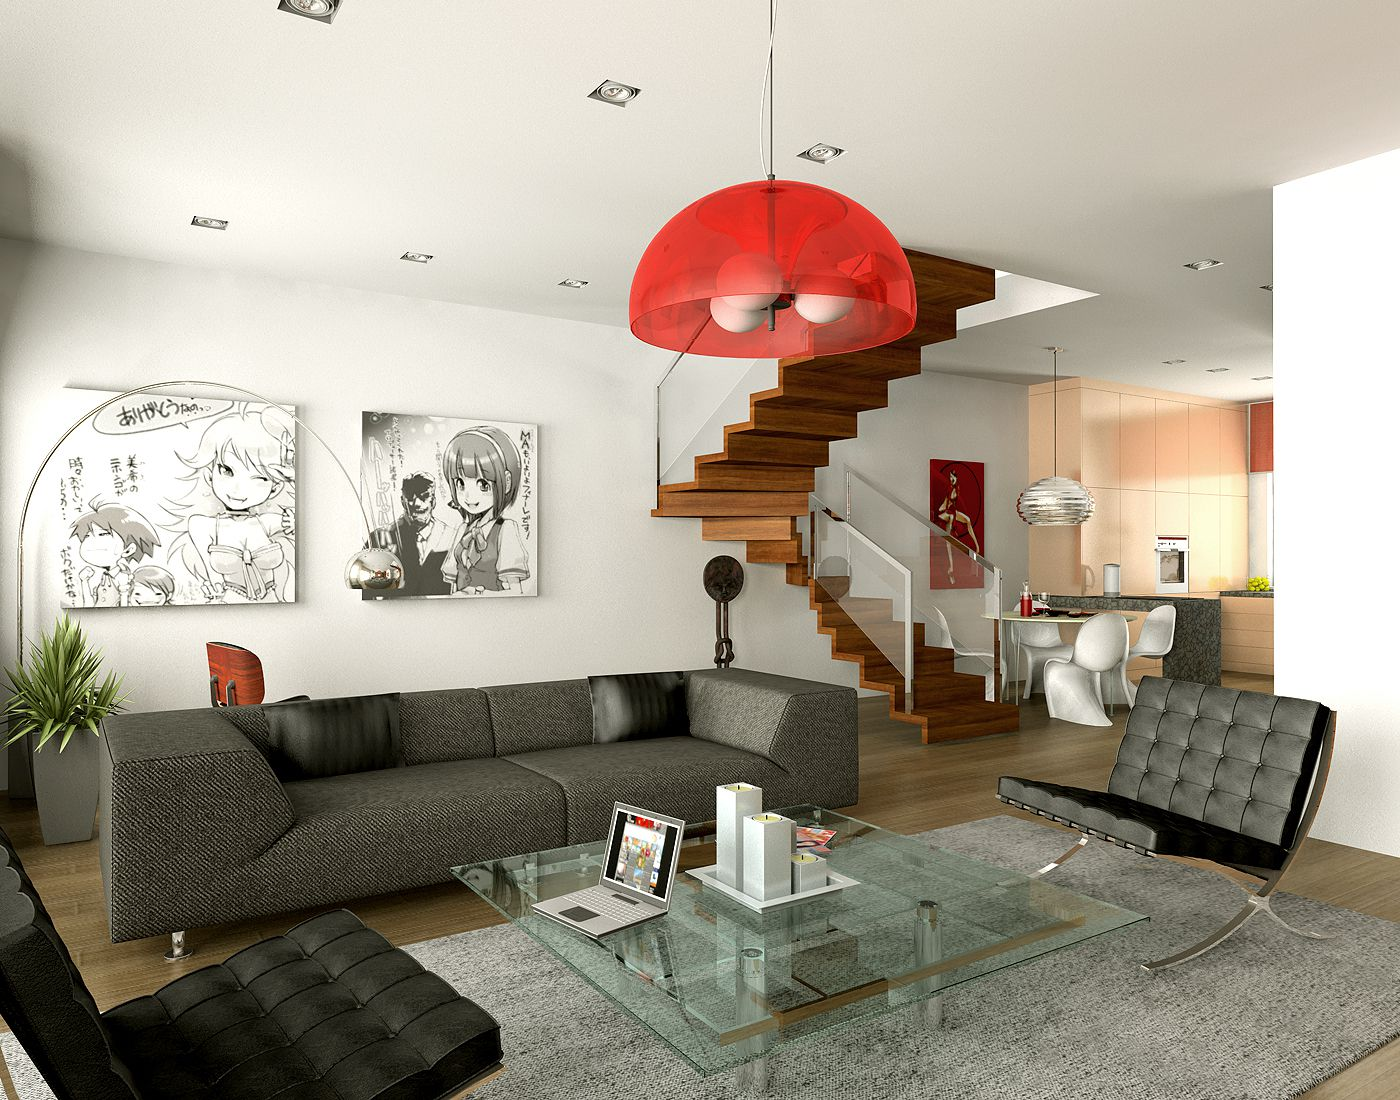 Astounding Design Of The White Wall Ideas Added With Wooden Stairs And Black Sofa Ideas As Room Decoration Ideas